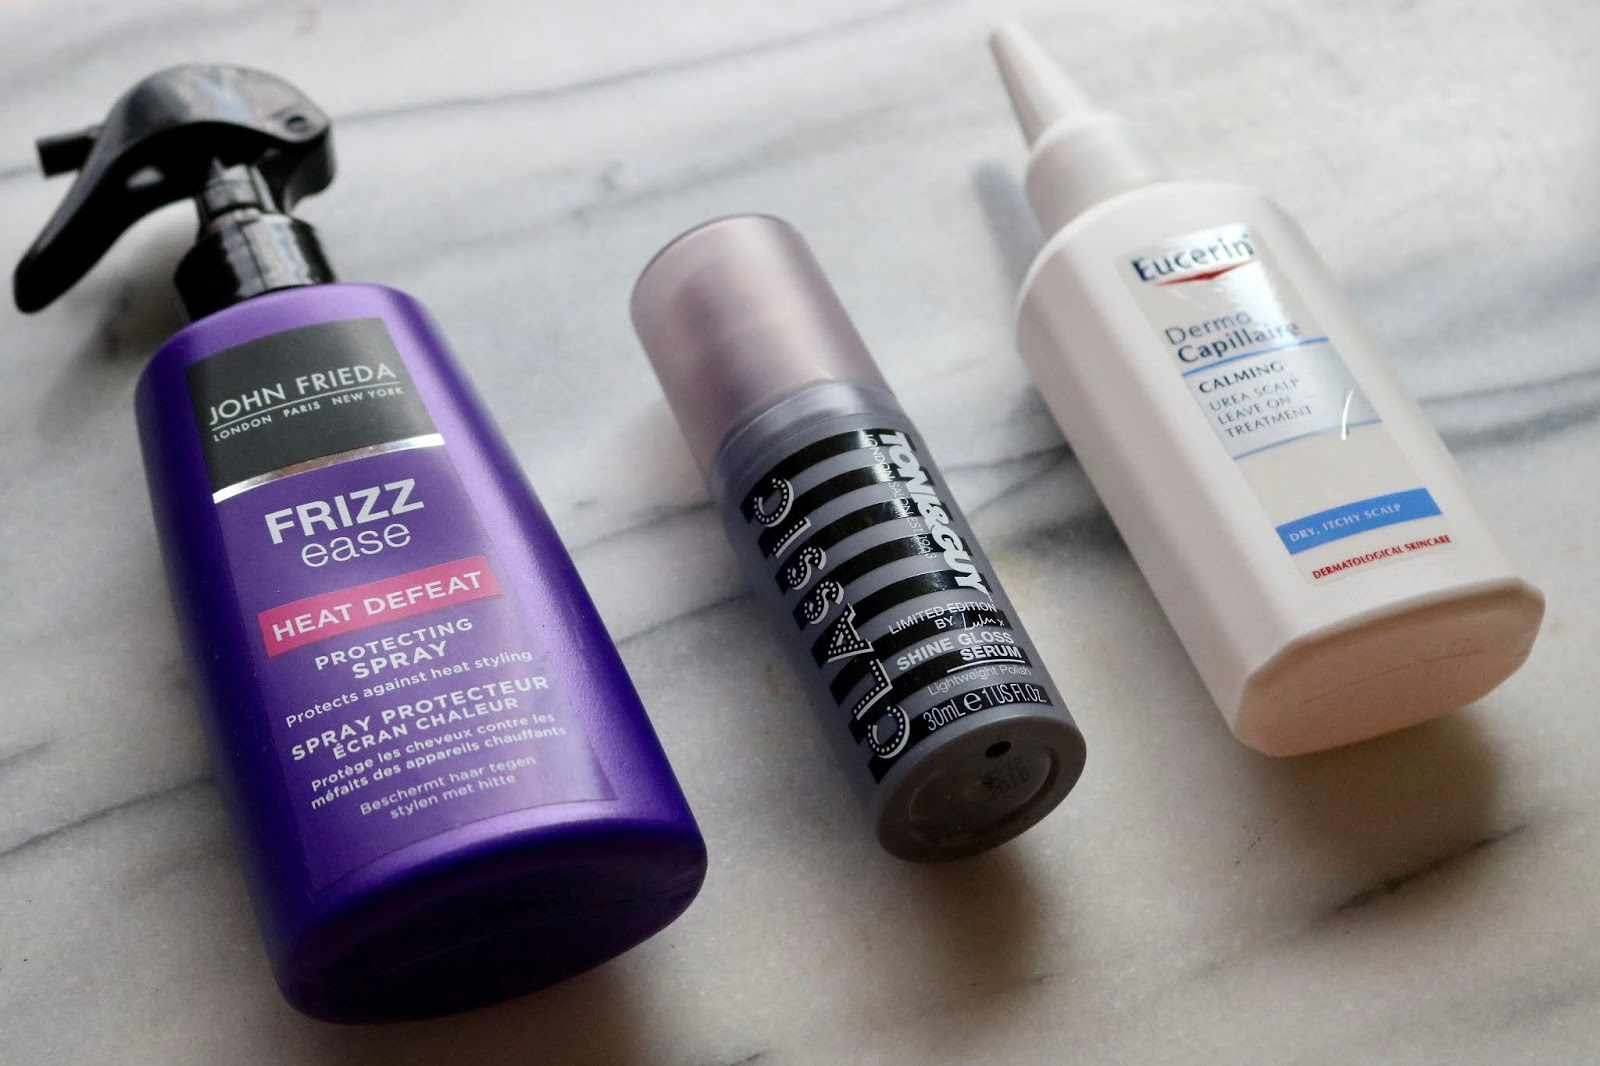 John Frieda Frizz-Ease Heat Defeat Protecting Spray, Toni & Guy Classic Shine Gloss Serum, Eucerin DermoCapillaire Calming Urea Scalp Treatment